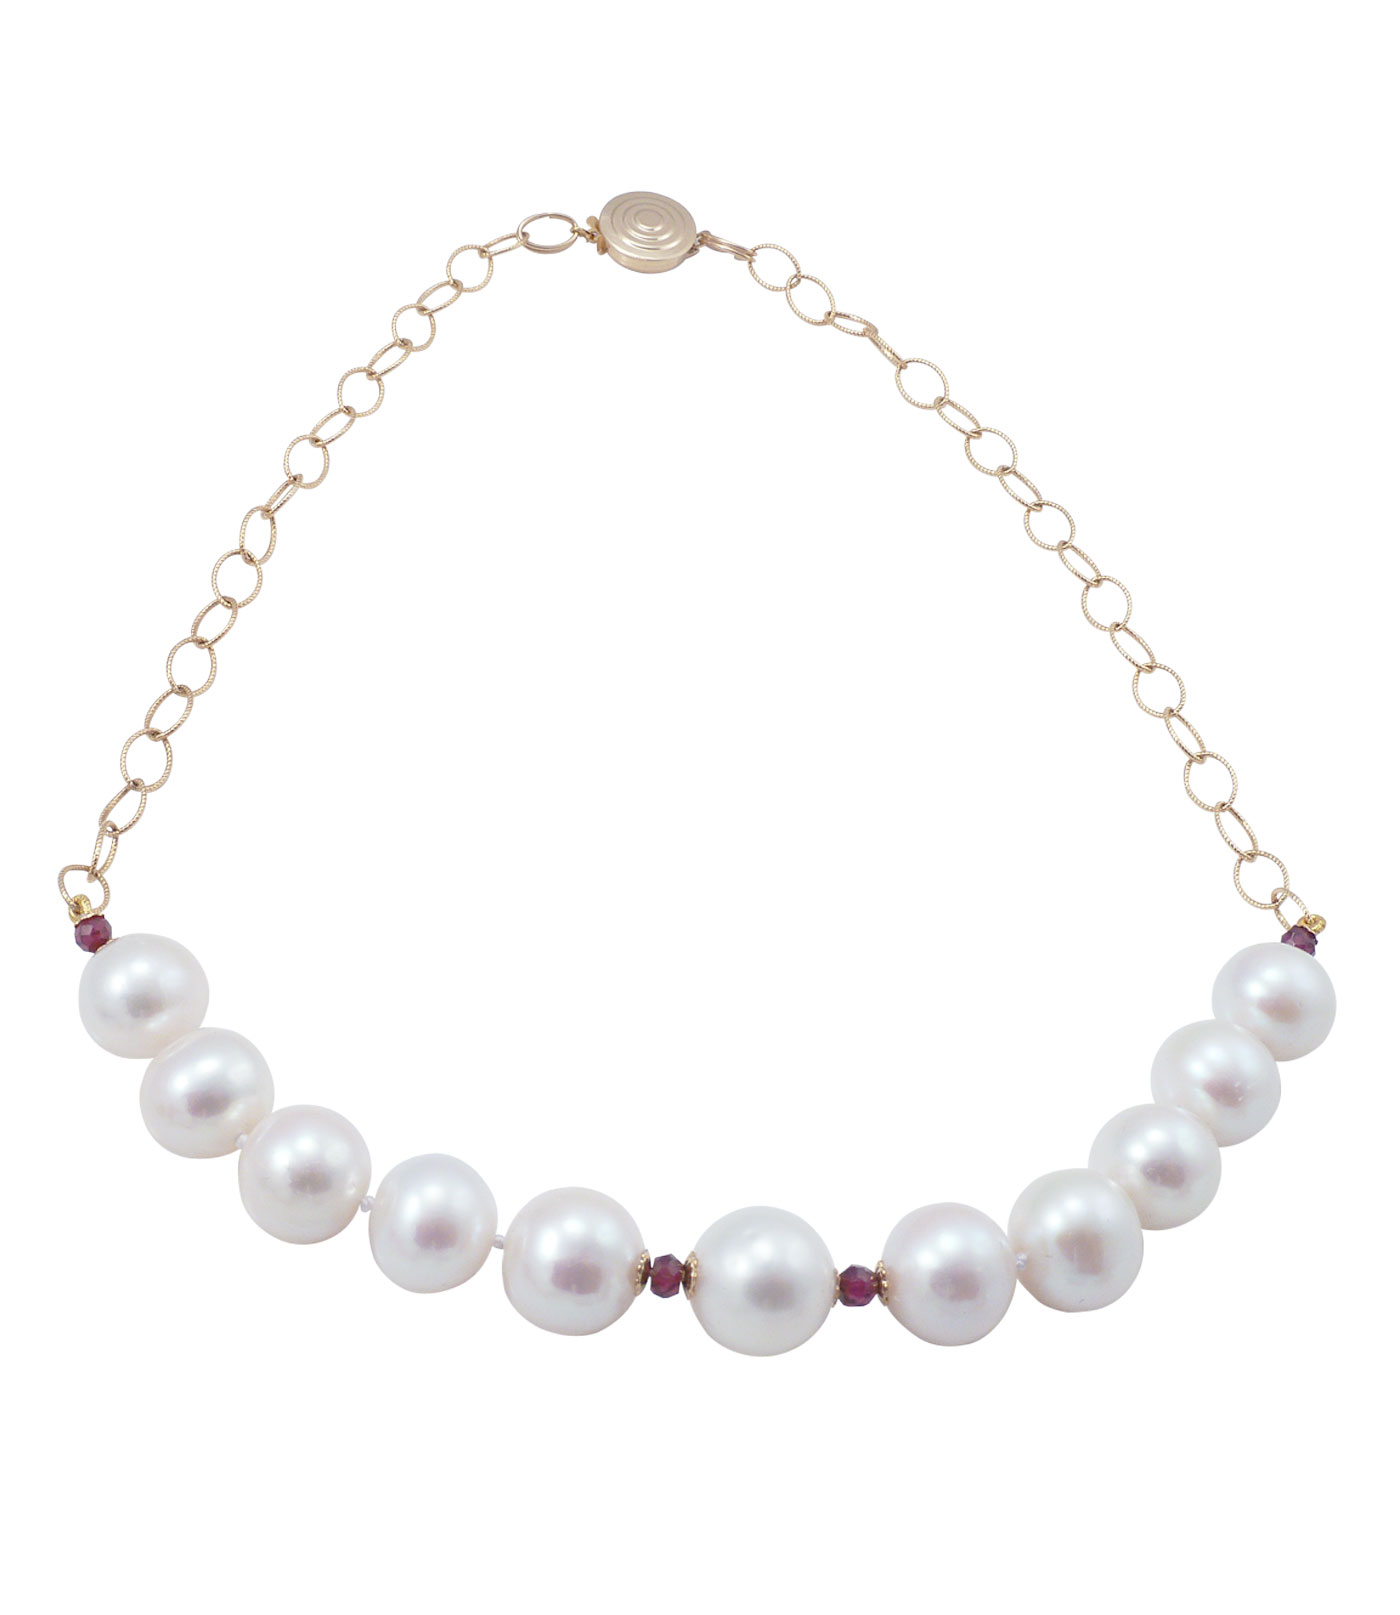 jewellery false crop baroque shop pearl product mckinney scale the upscale opera pearls margot length strand subsampling